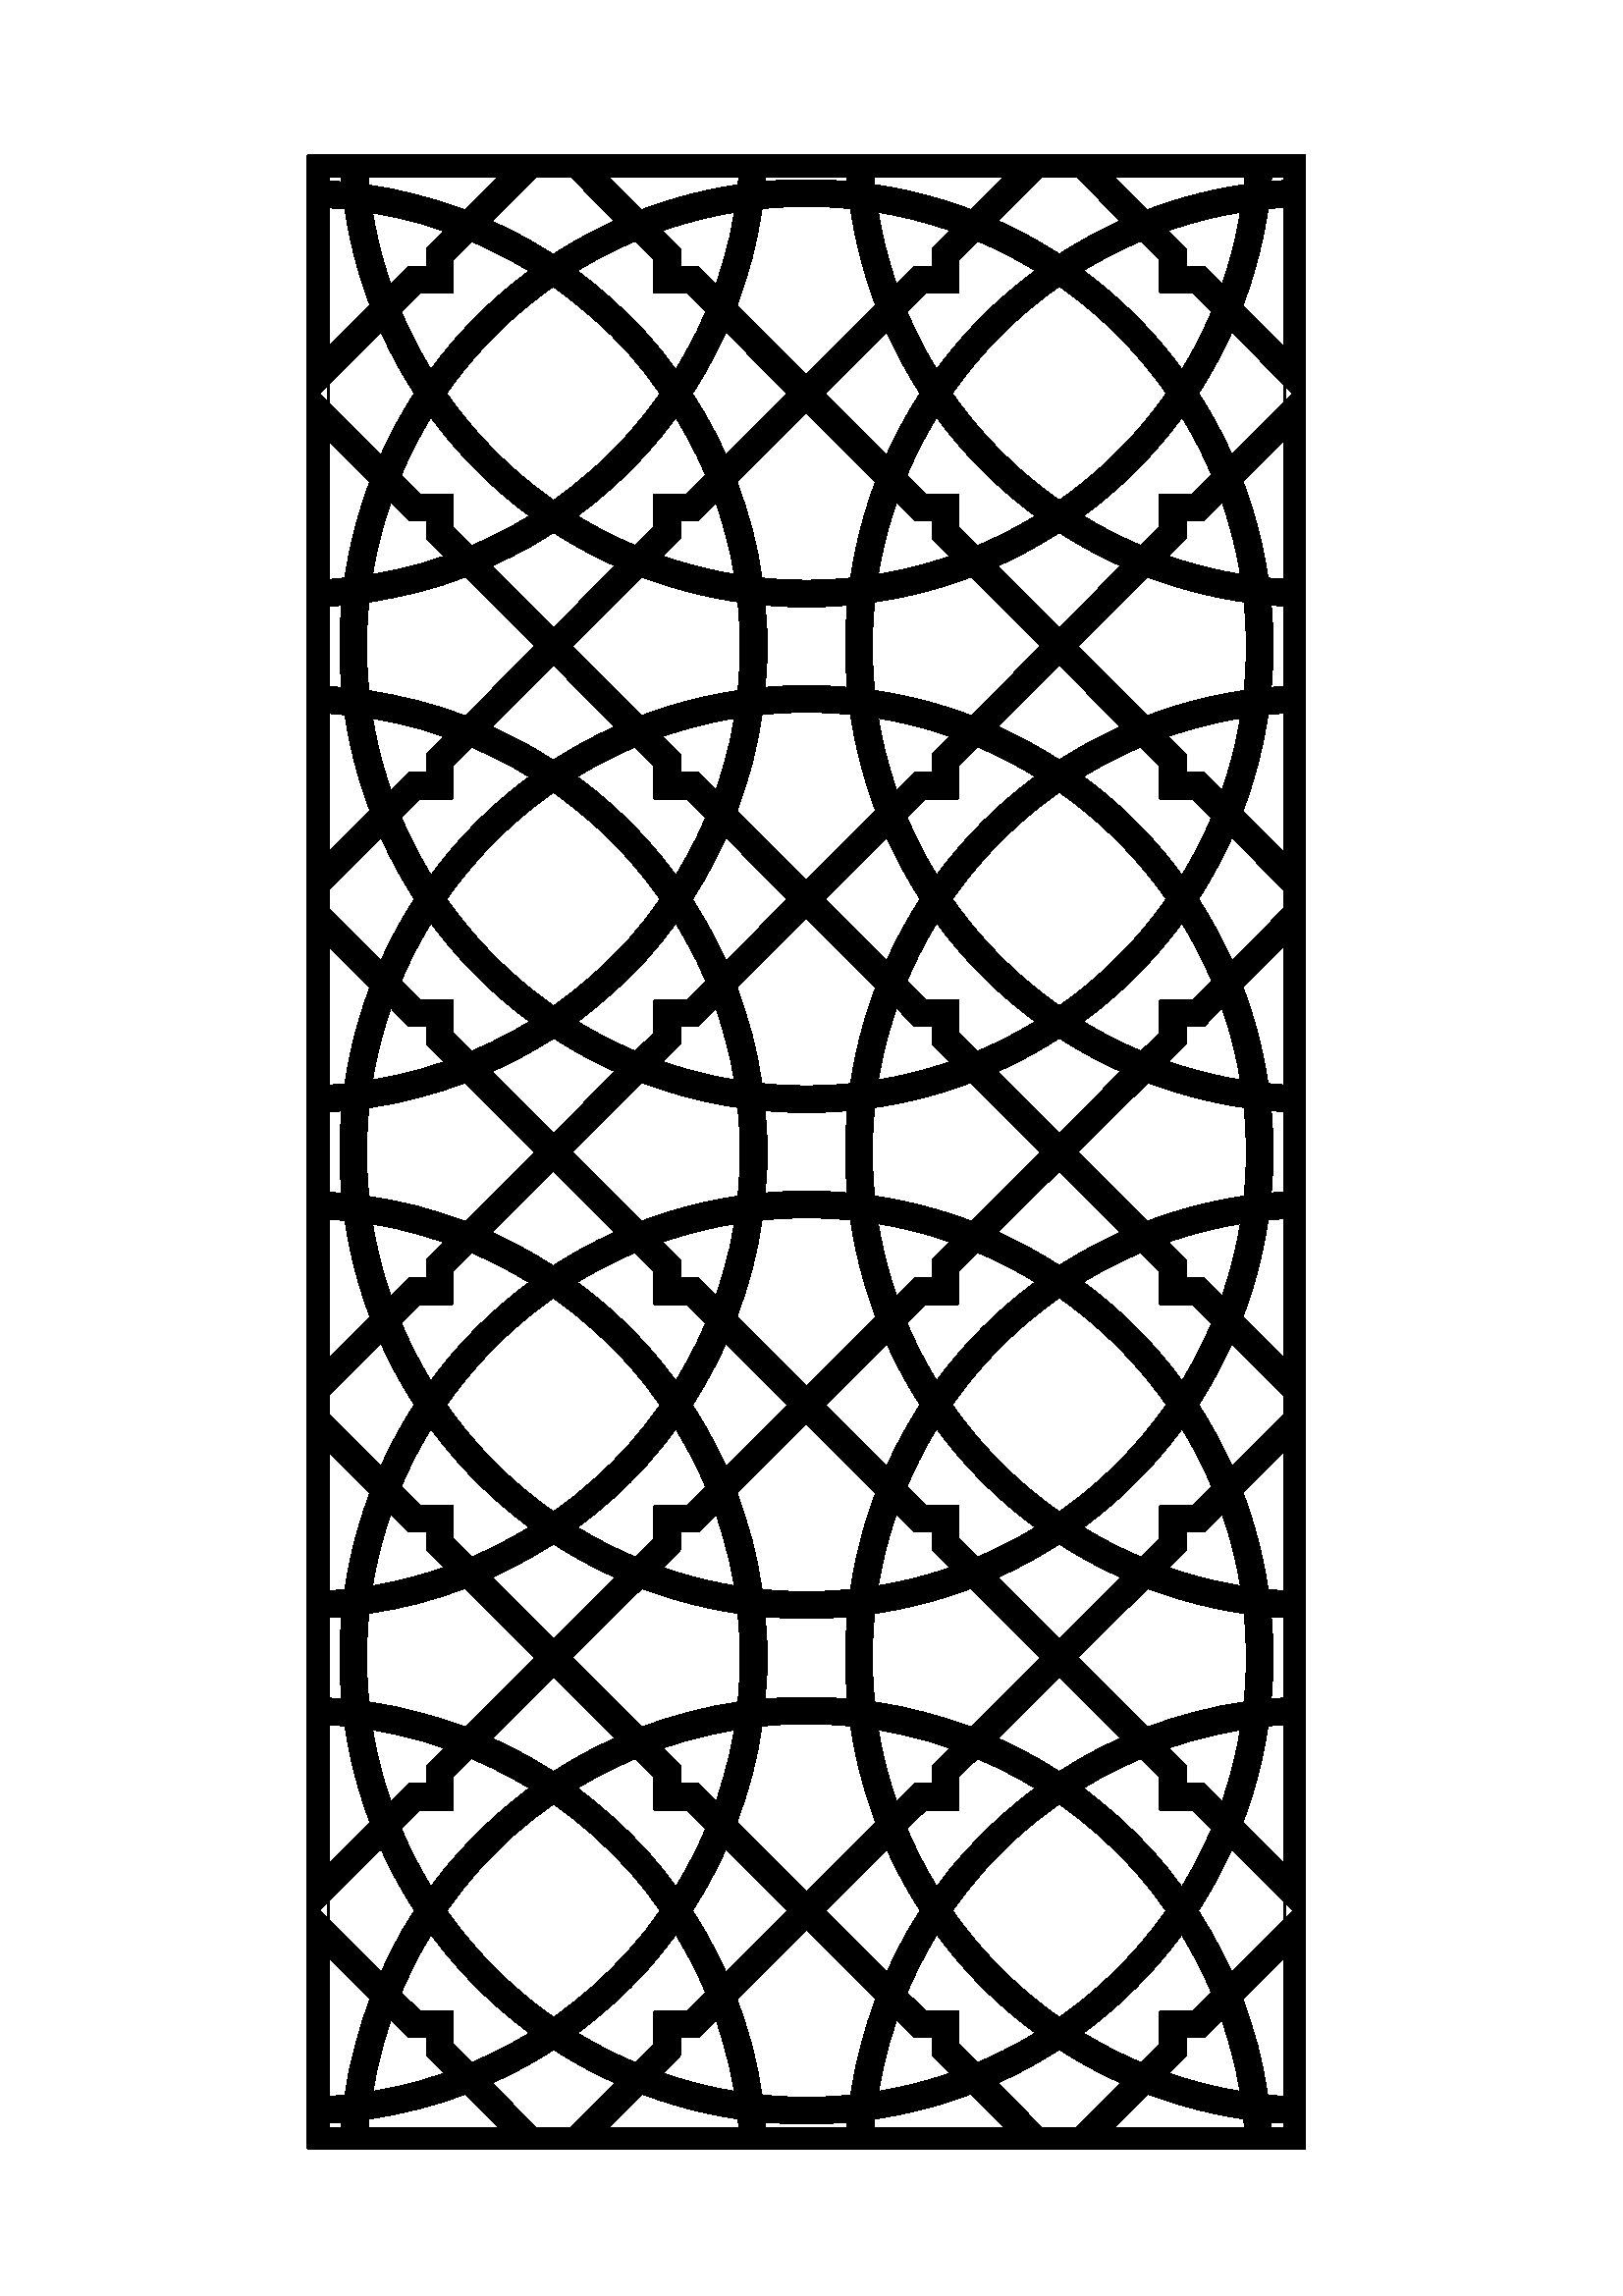 Dessin Marocain Pochoir Laser Cut Door 6mm Steel Laser Cutting Pinterest